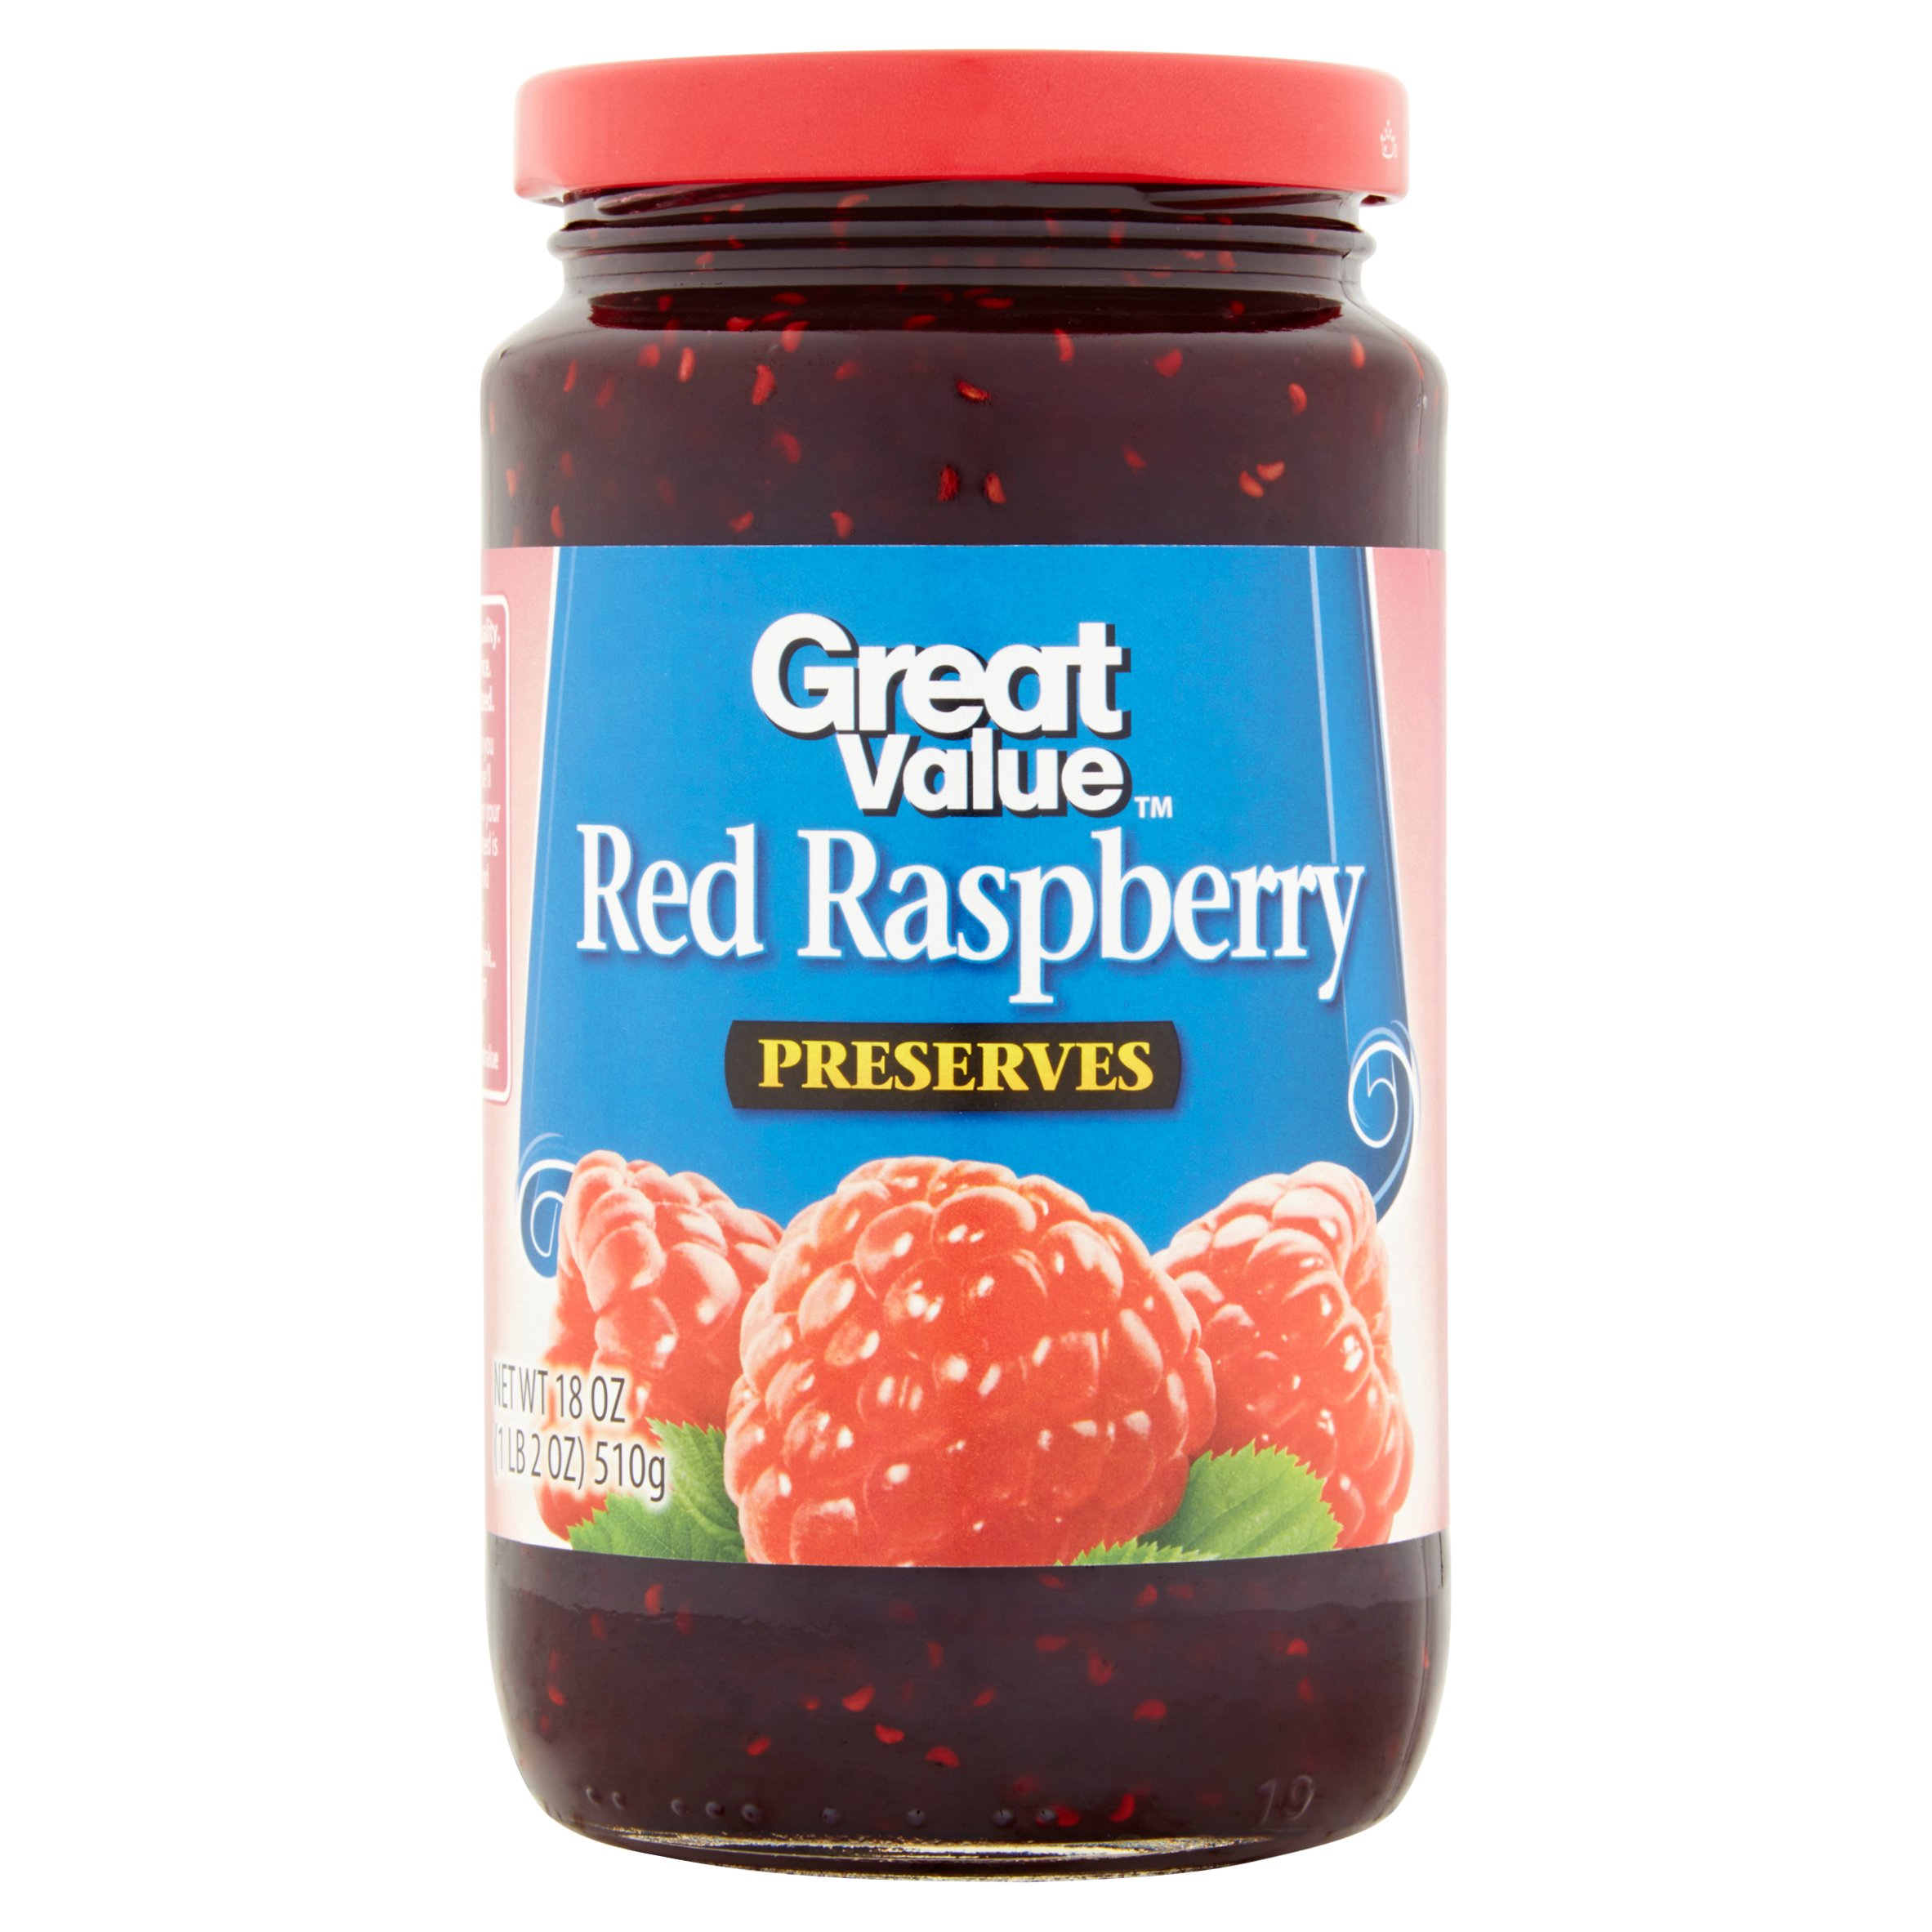 Great Value Red Raspberry Preserves, 18 oz